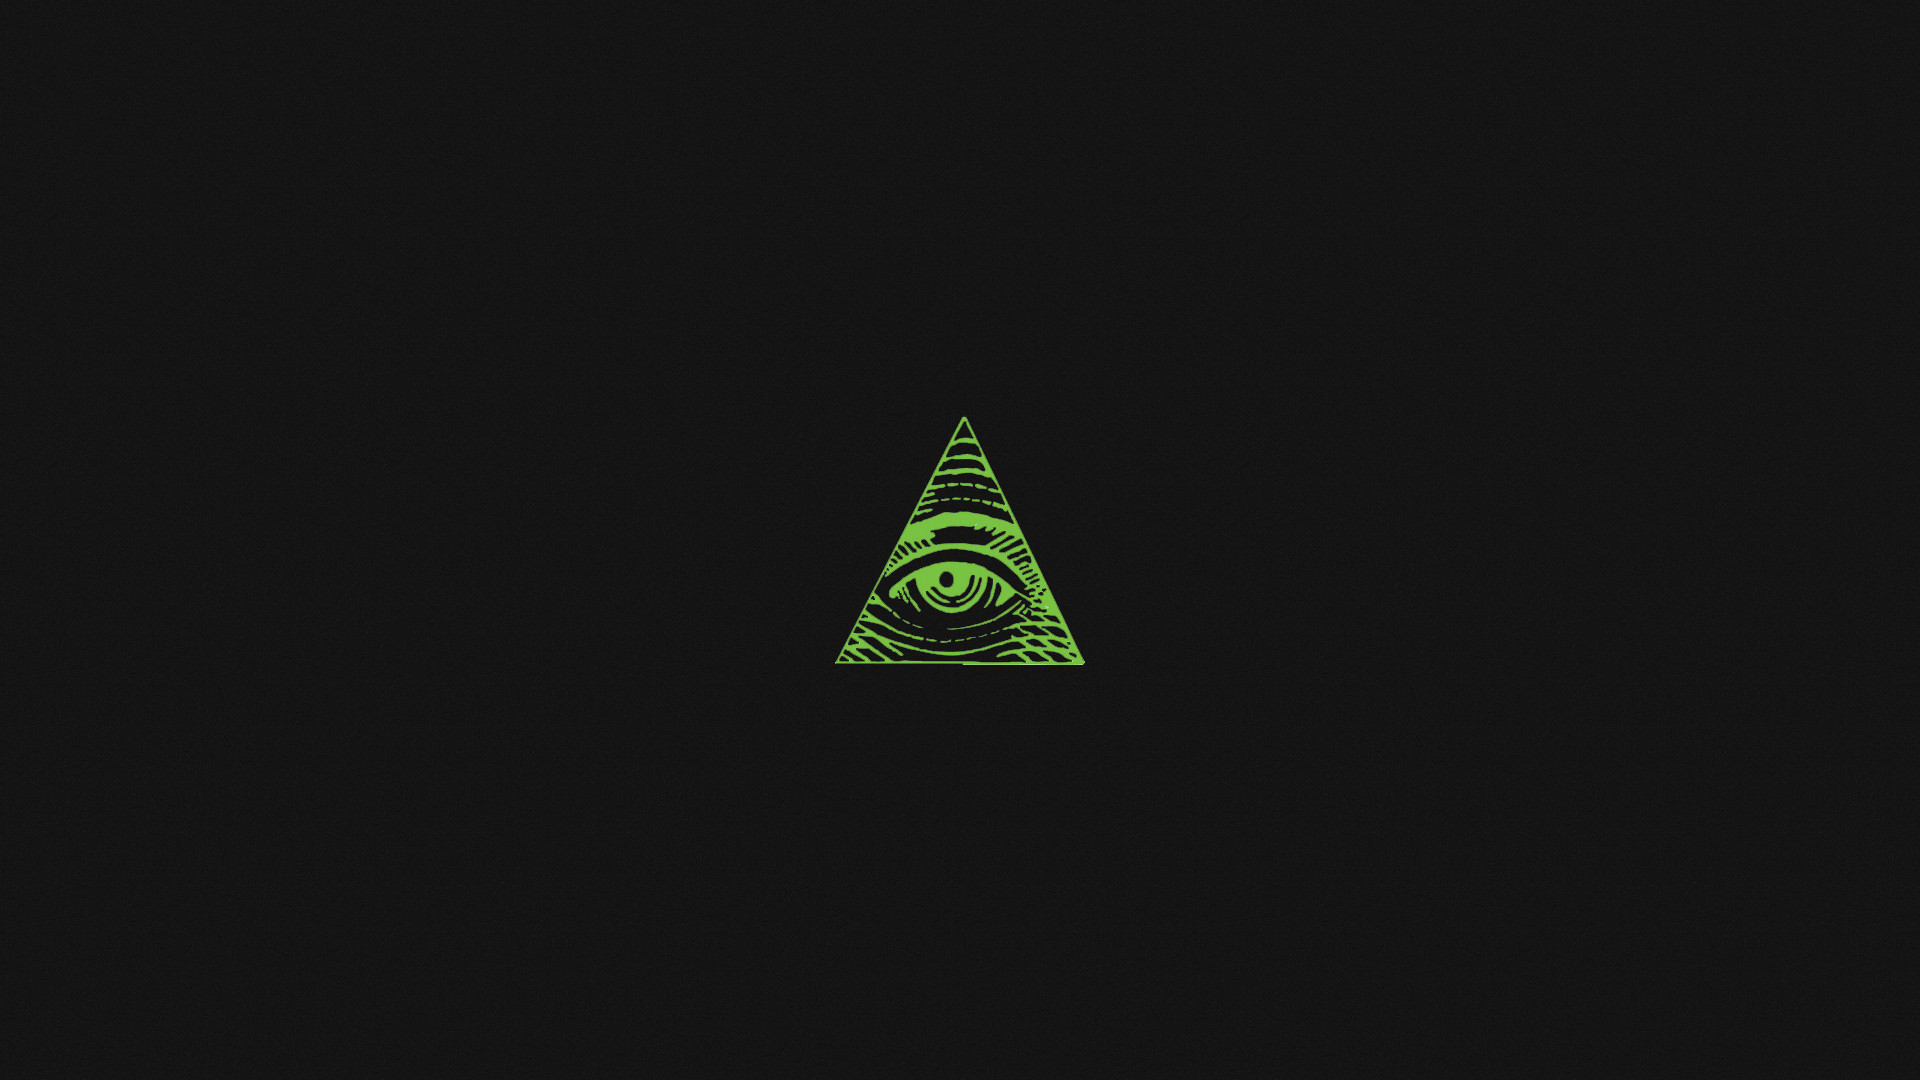 Illuminati Wallpaper 1080p (73+ images)